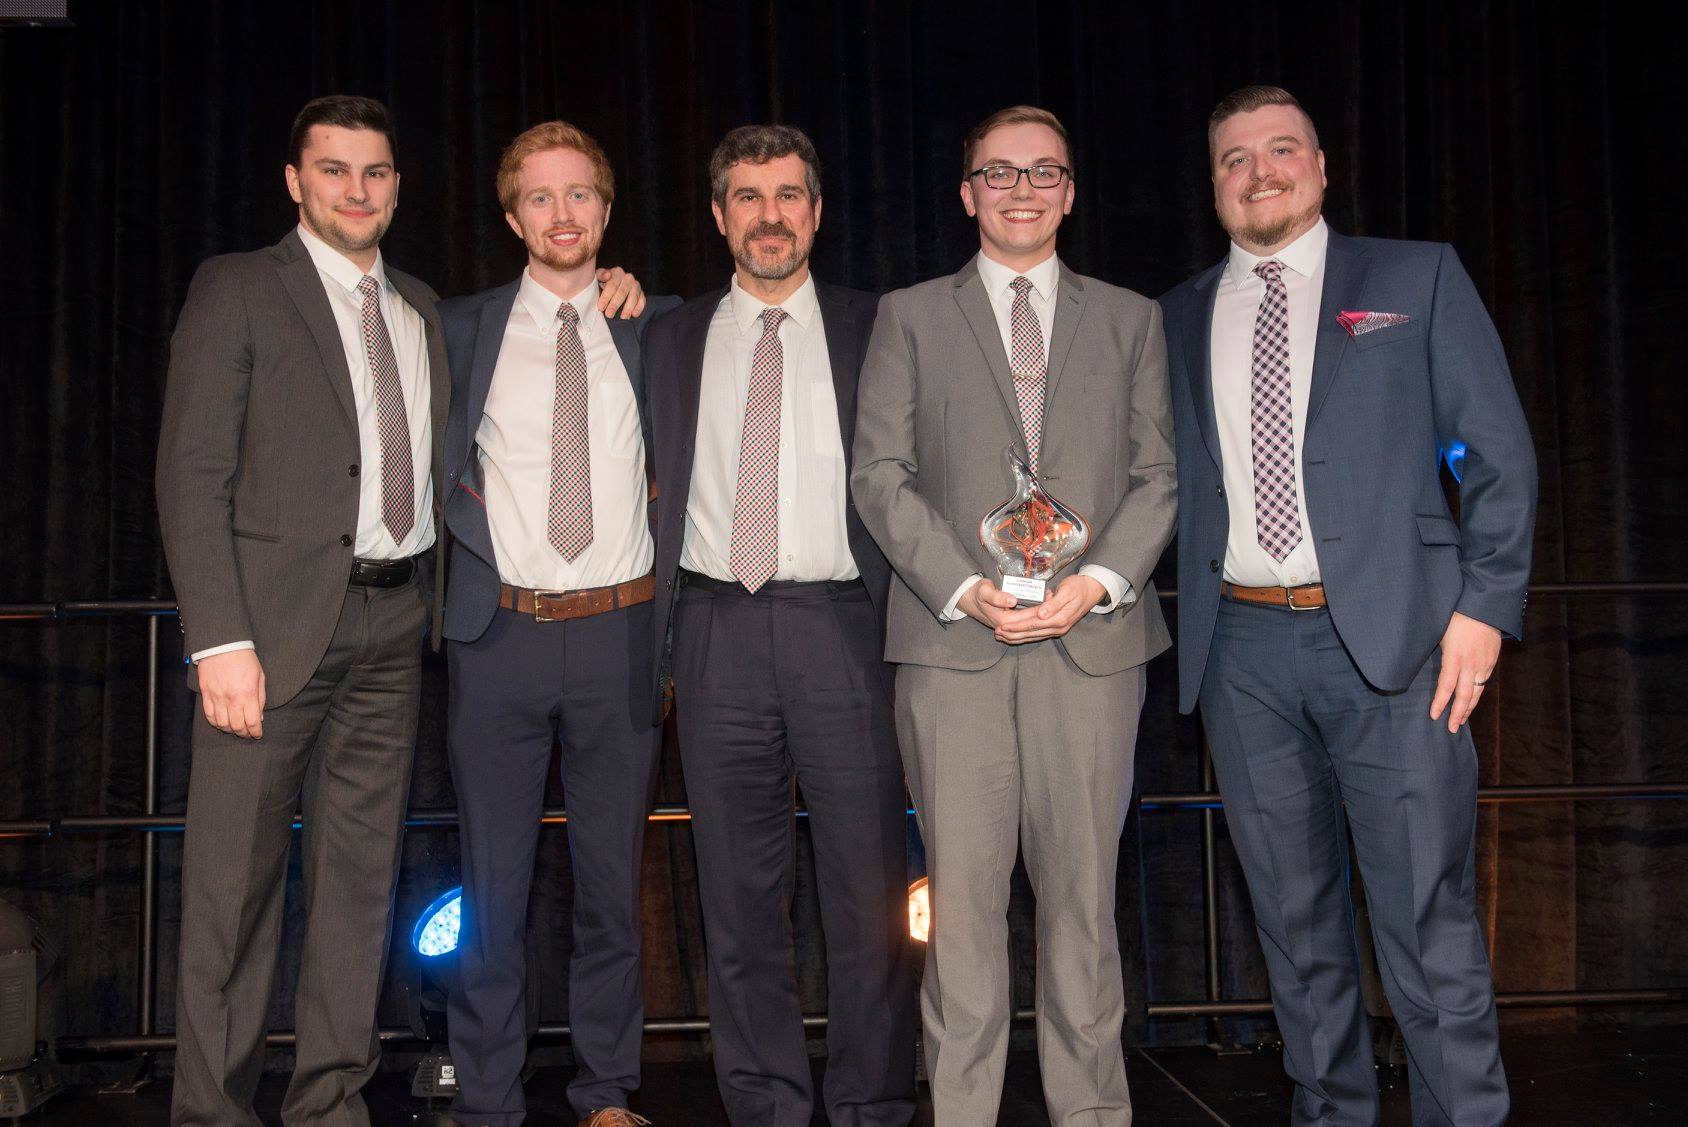 Members of the Canum team (Jayson Brown, Kyle Woods, Felipe Chibante, and Alex Clarkin) accepting the grand prize award from NBIF's Director of Investments, Ray Fitzpatrick.